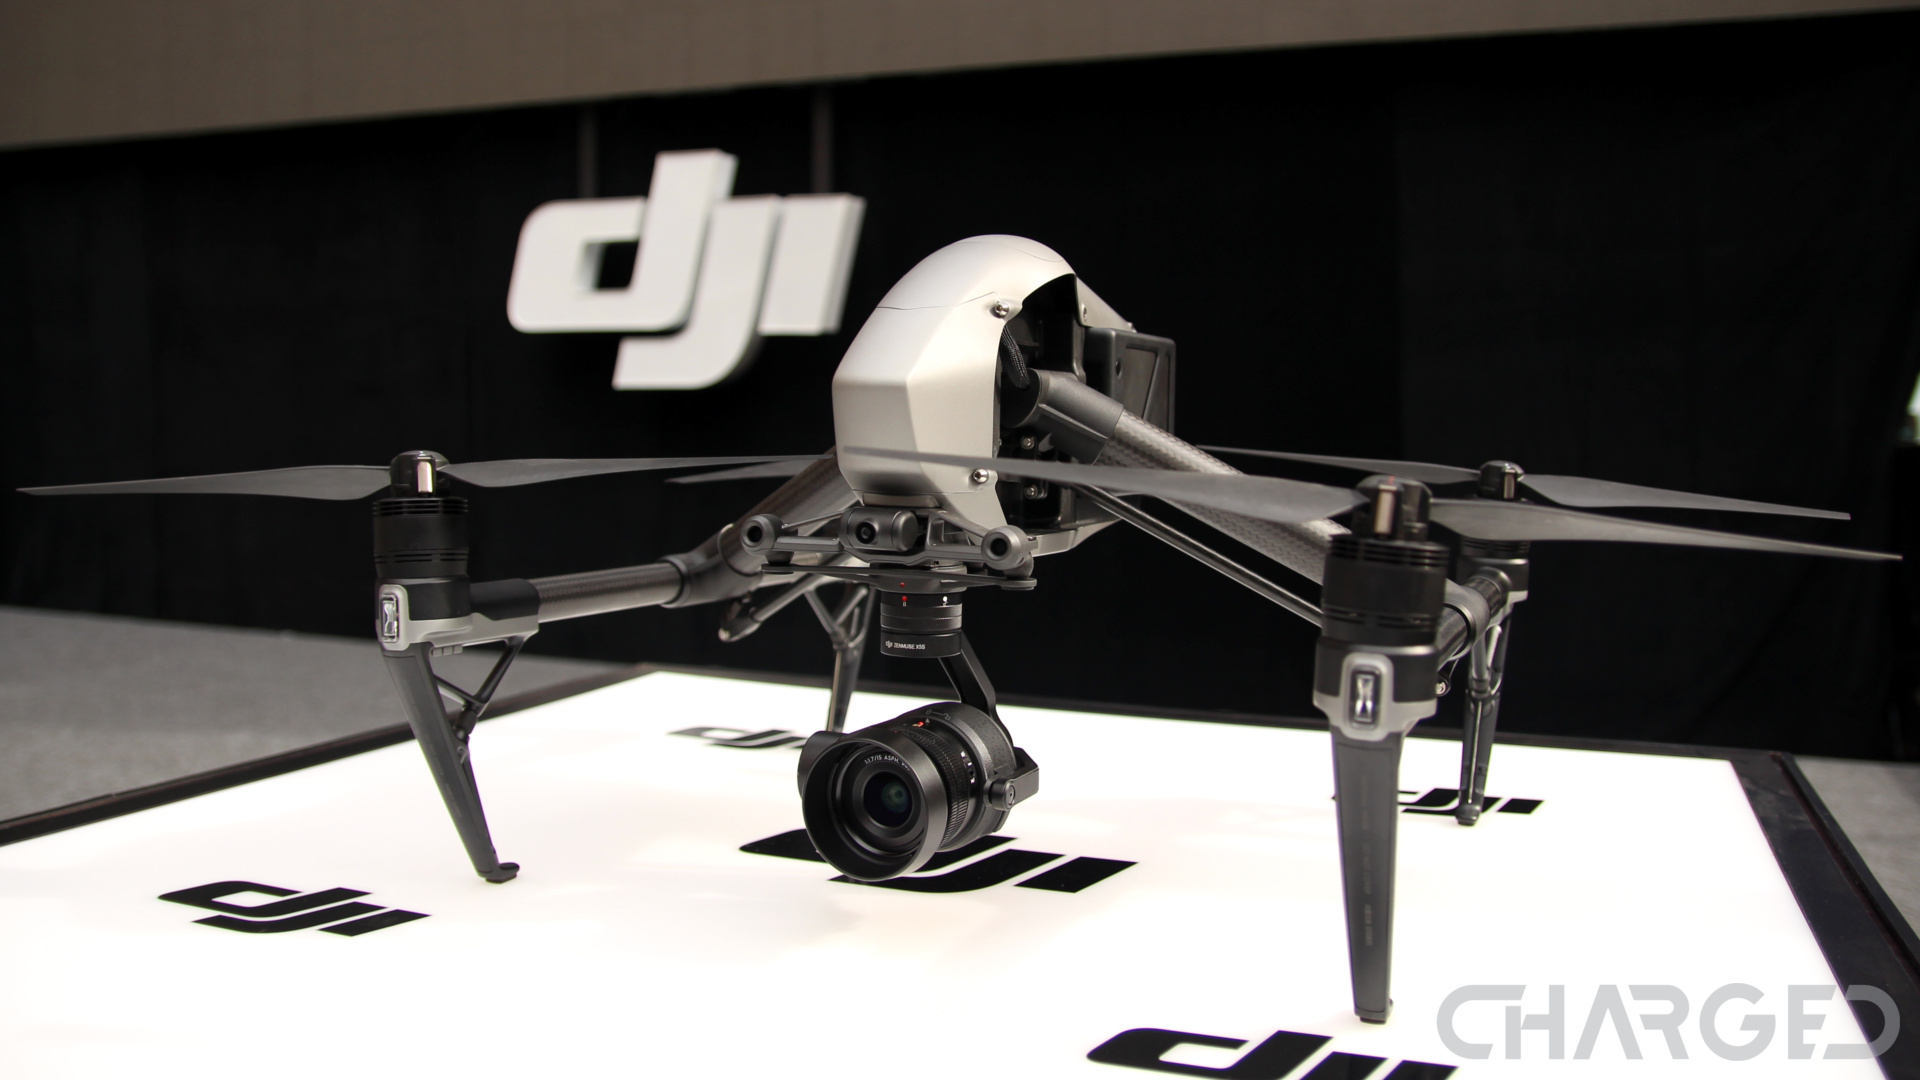 buy drone with Dji Inspire 2 Feature Film The Circle 2775 on Samsung Gear Sport Review together with Singapore Flyer further Tag Heuer Connected Smartwatch 11 10 2015 together with Behold Xm42 Flamethrower Terrifying Weapon You Can Now Easily Buy Online further Dji Announces Price And Delivery Date For Ronin S Single Handed Gimbal.